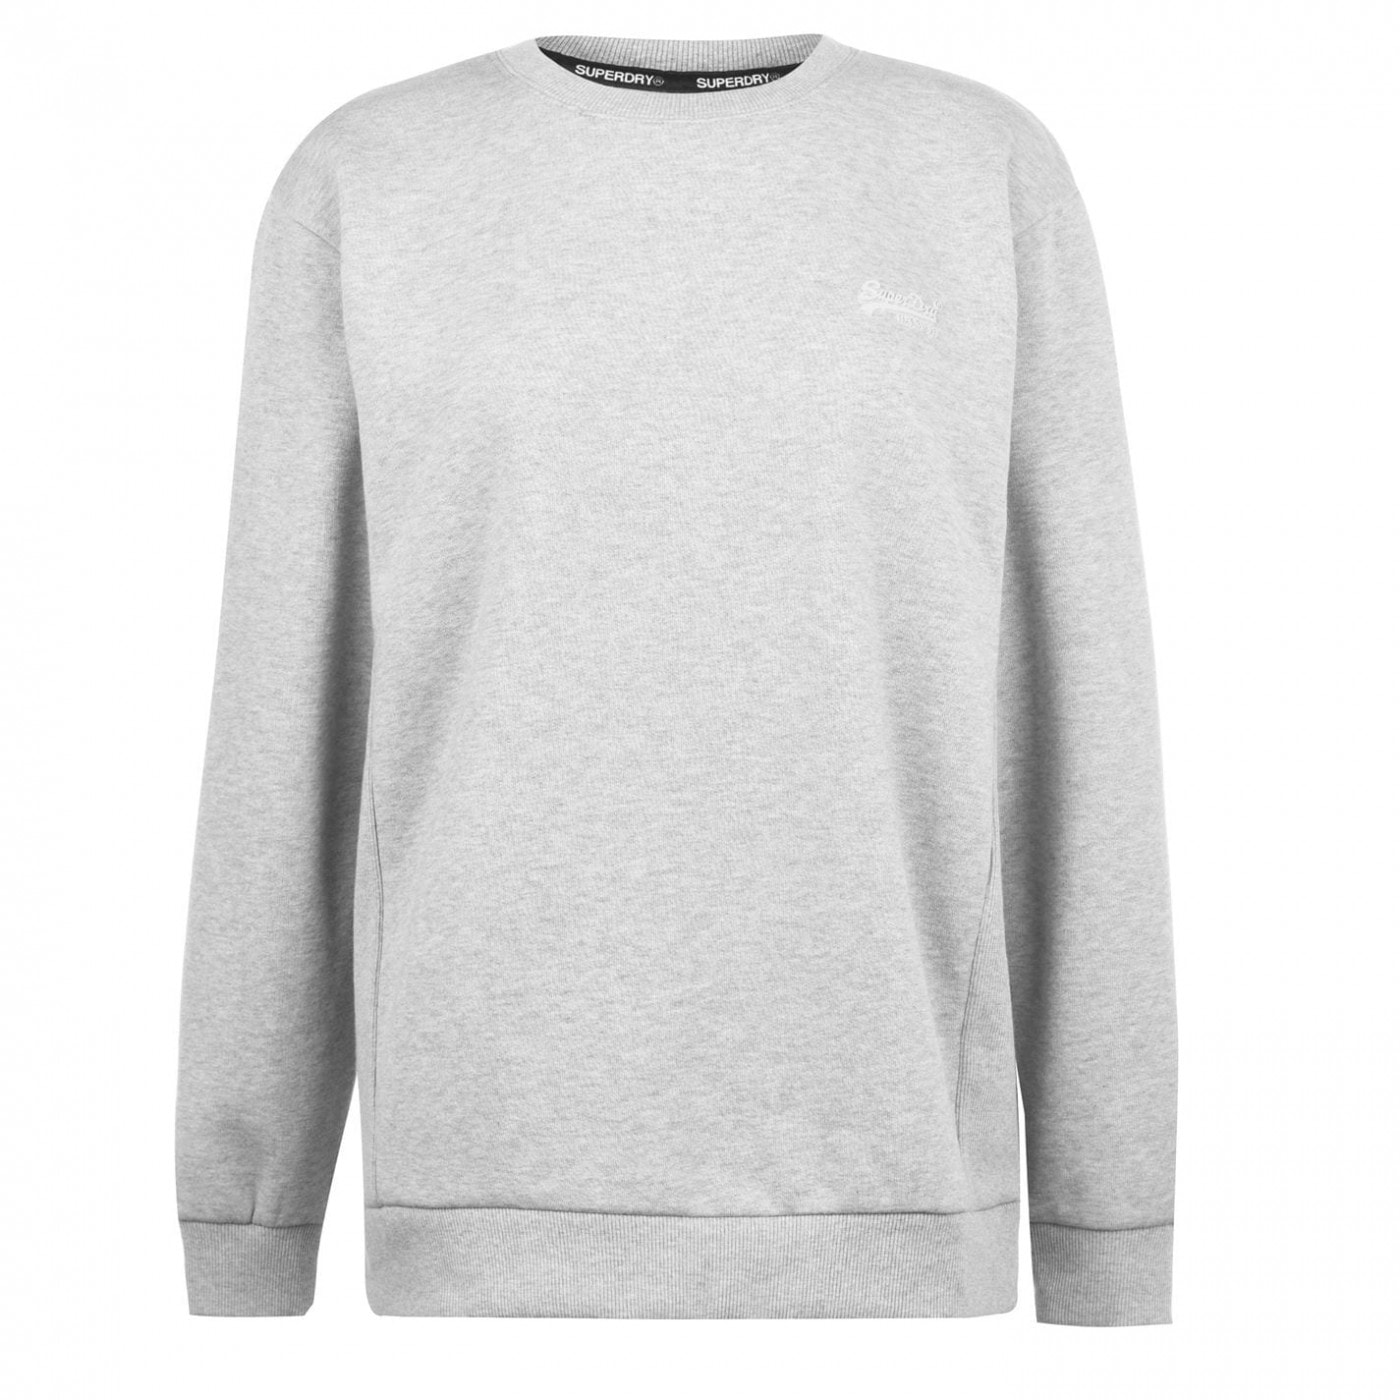 Superdry Elite Crew Sweatshirt